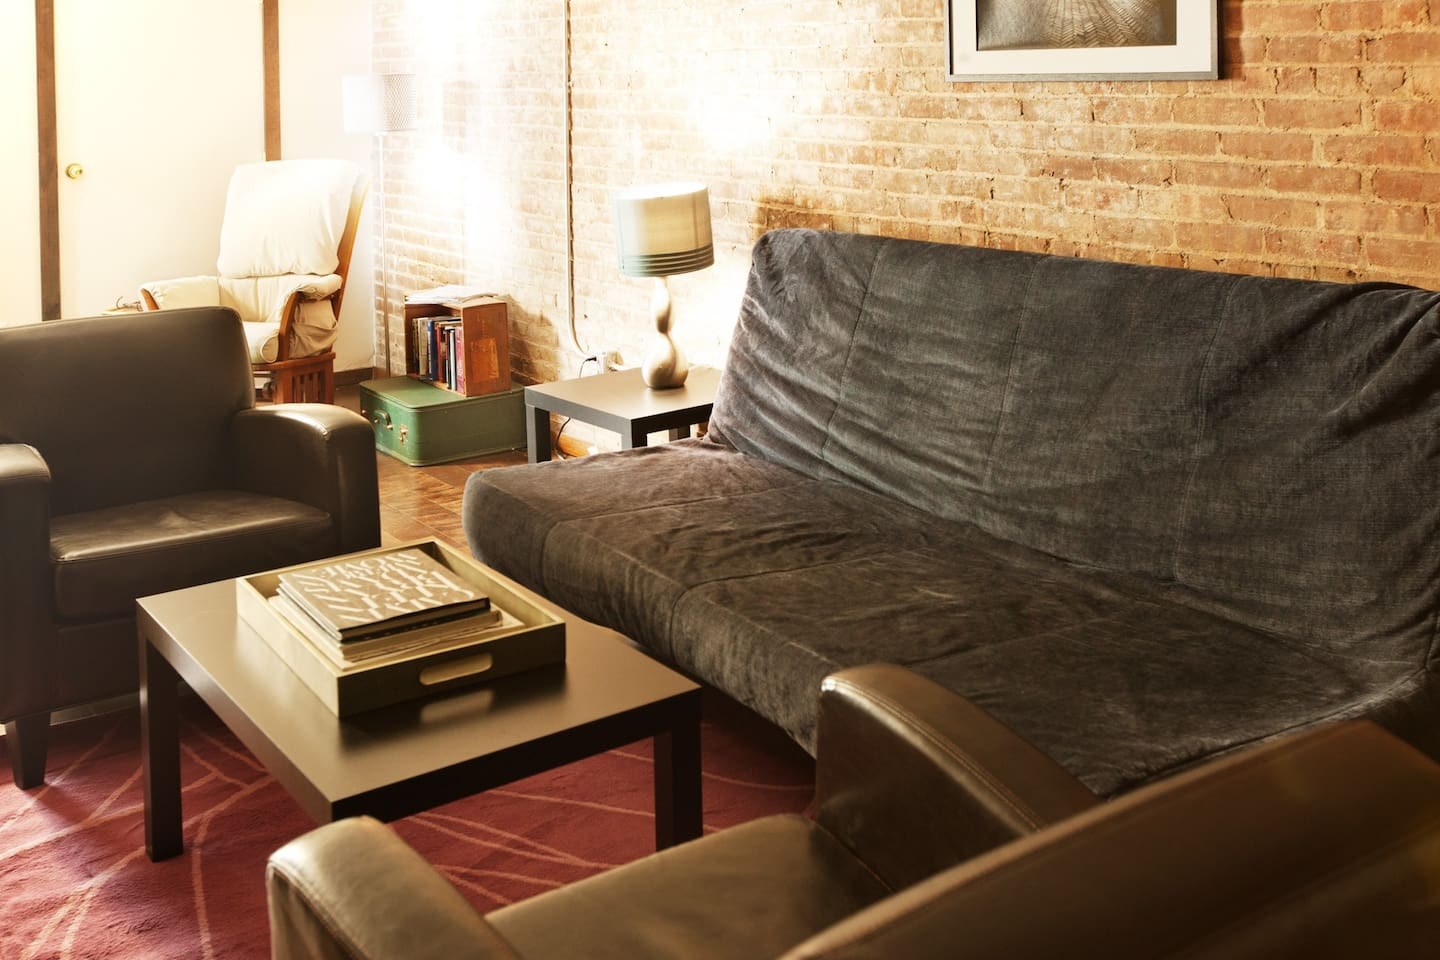 sink into comfy leather chairs. Relax in the rocking chair. Exposed brick throughout.